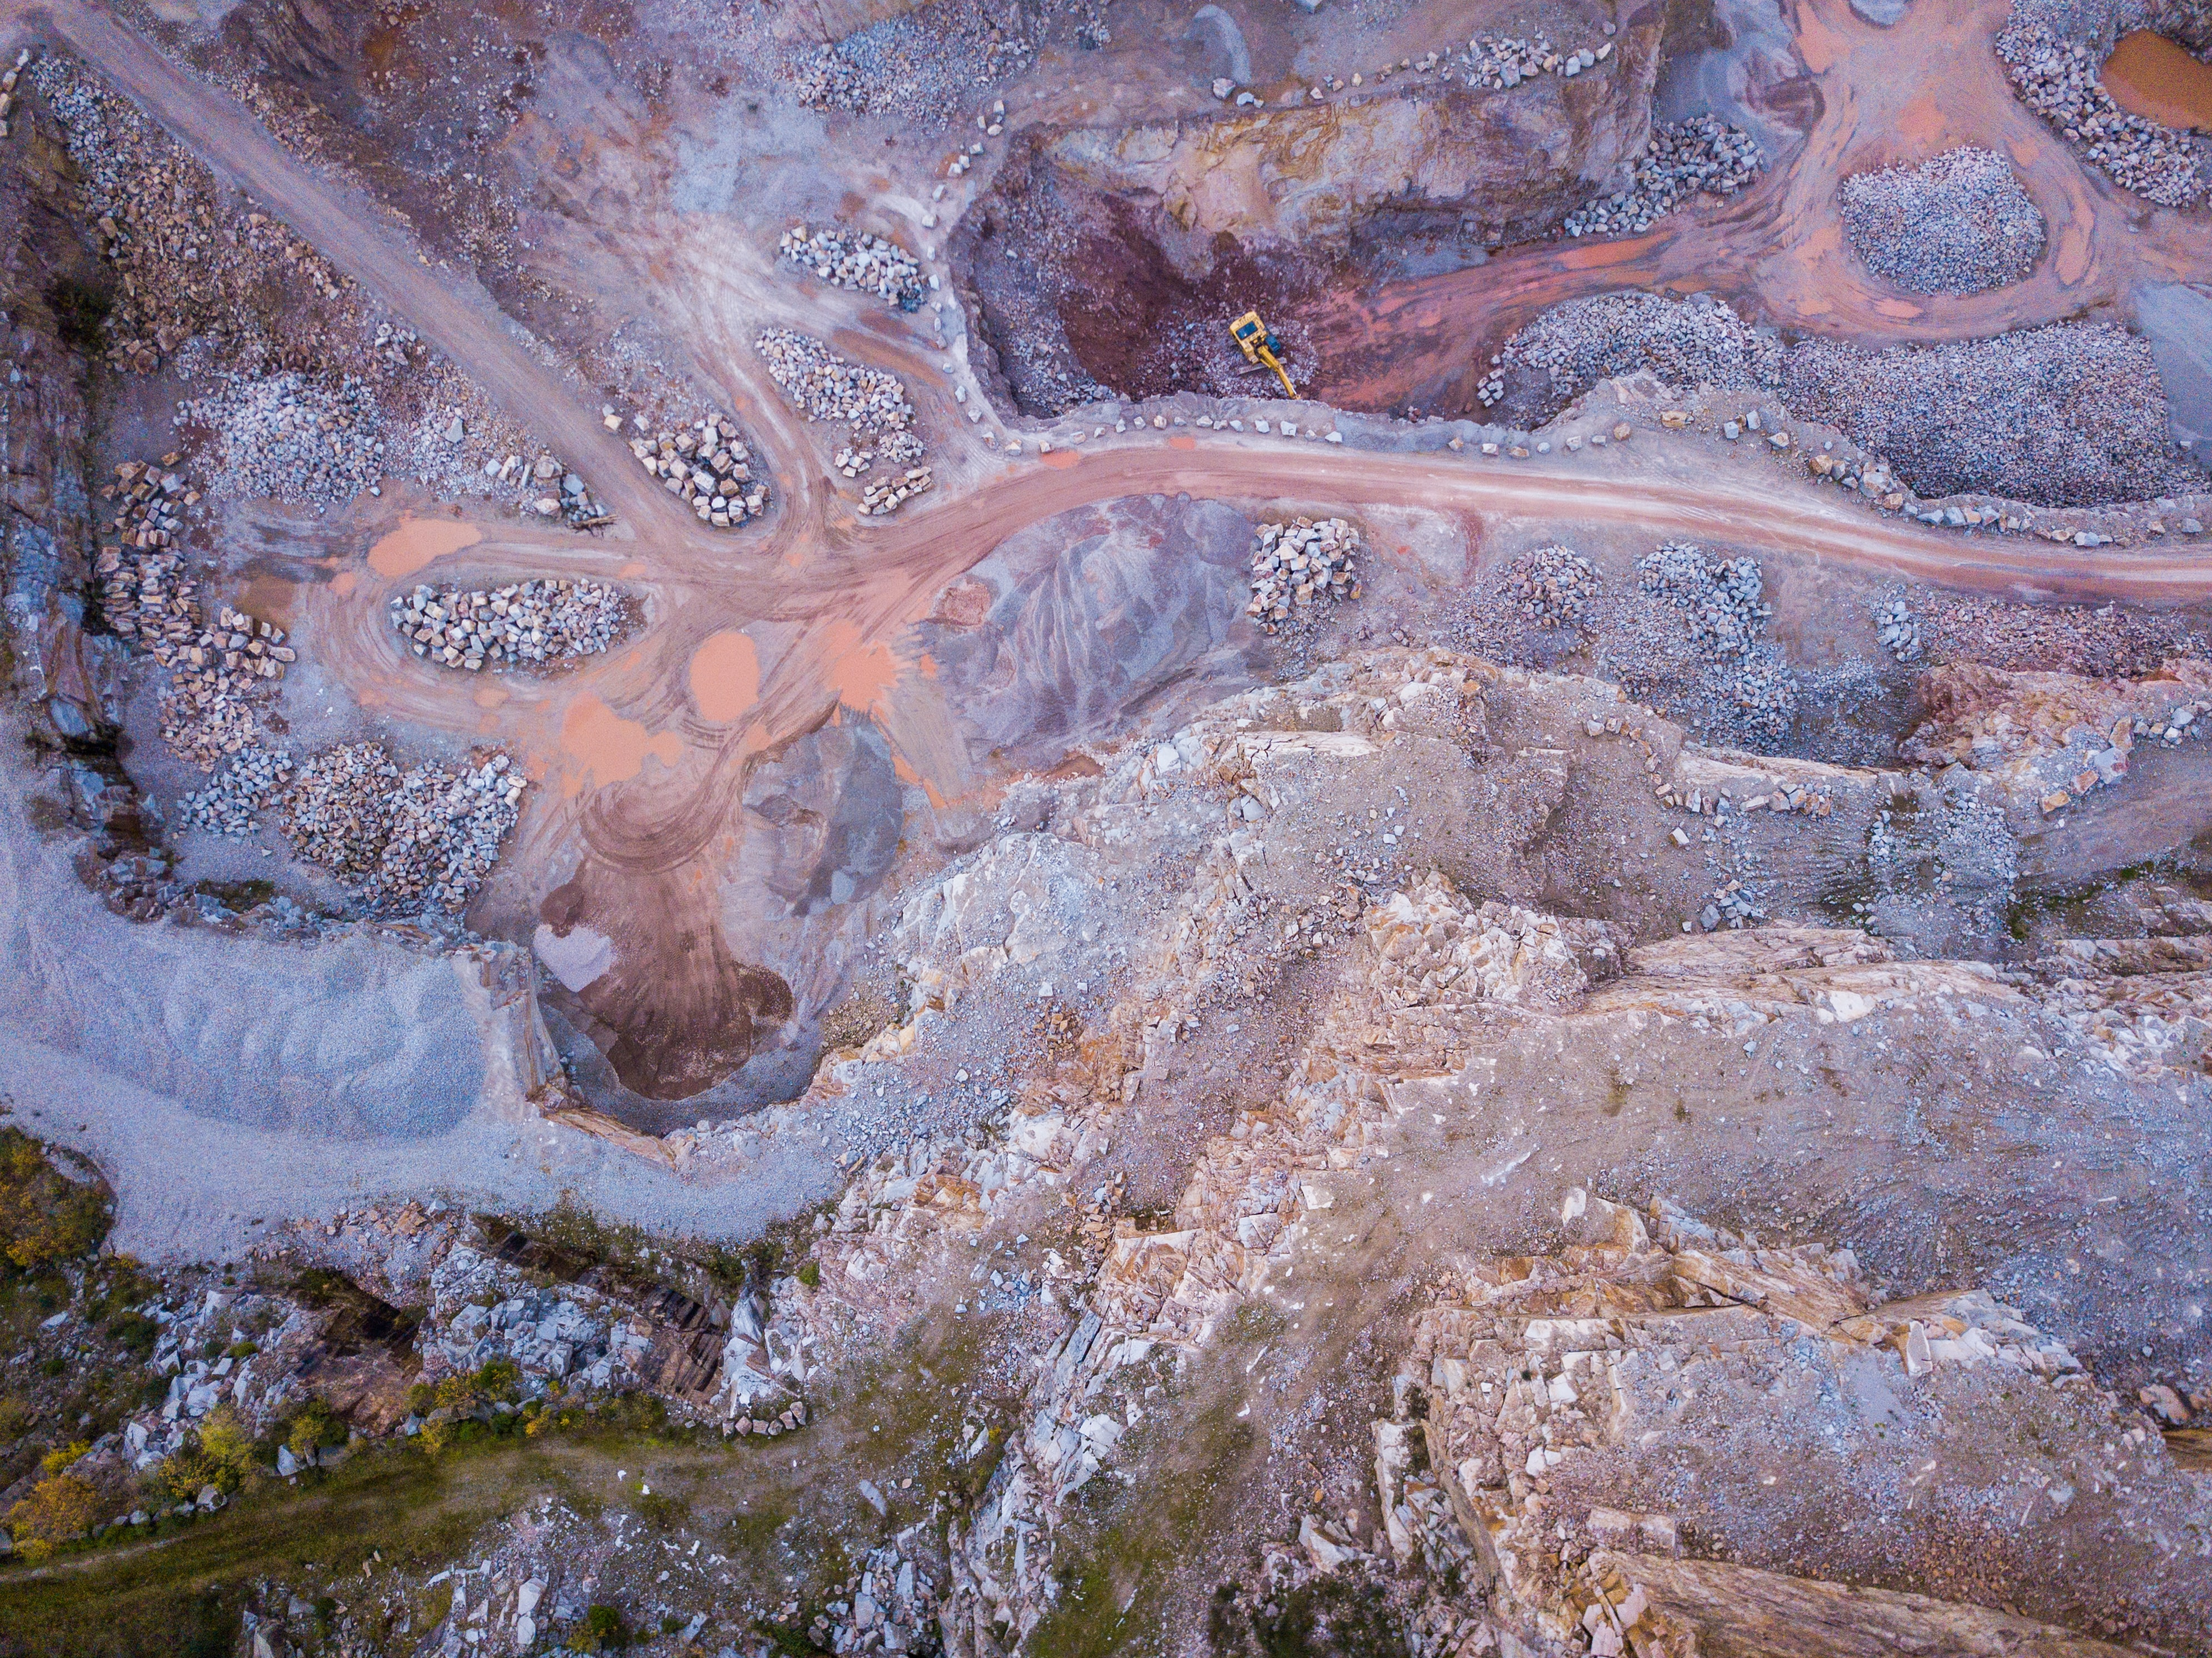 aerial photo of mining area at daytime